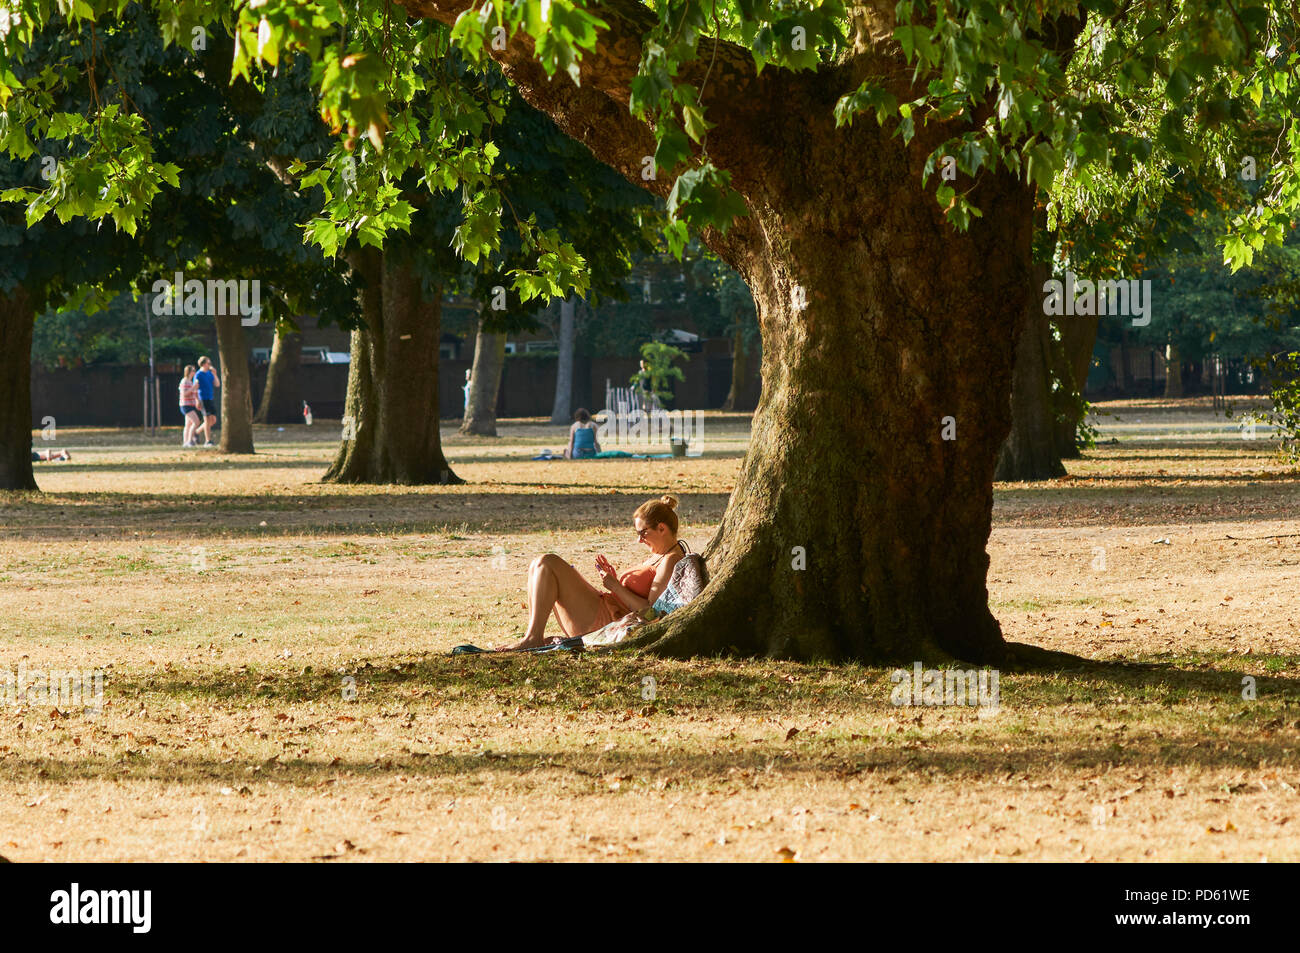 Sunbather in Victoria Park, East London UK, in early August, during the 2018 heatwave - Stock Image